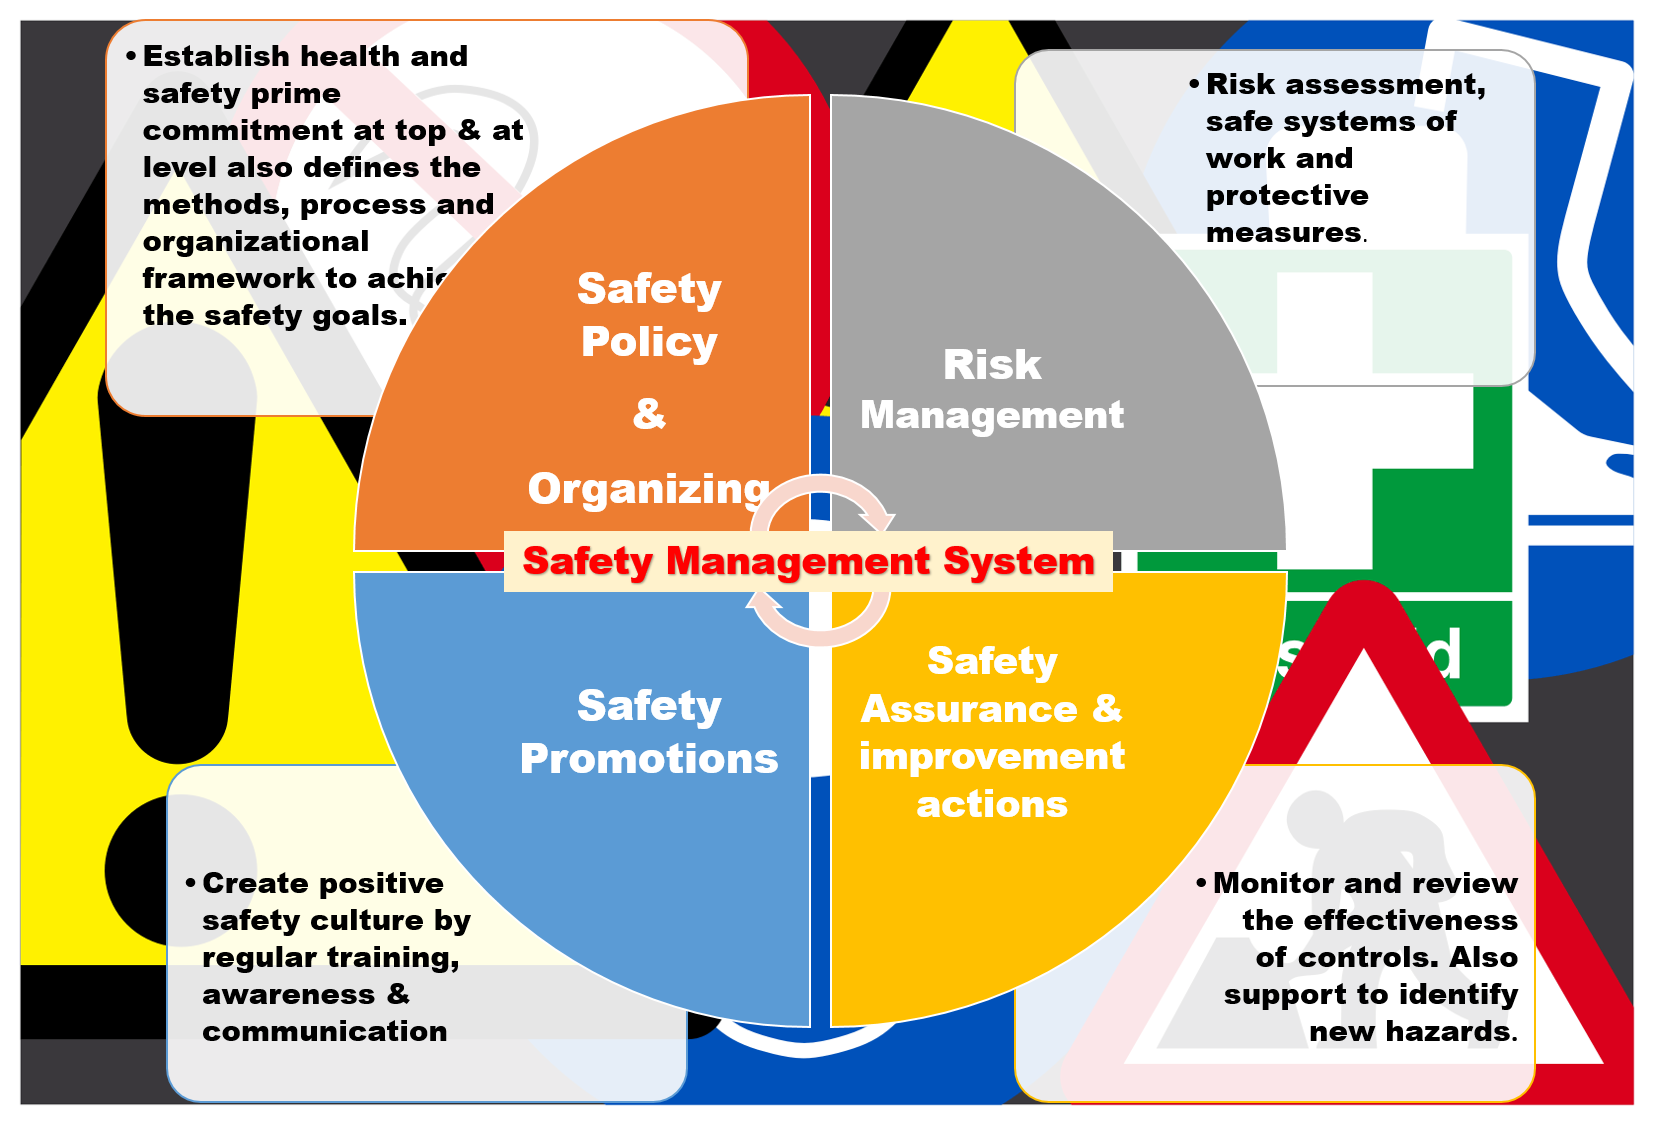 Safety Management System and role of Safety Specialists in